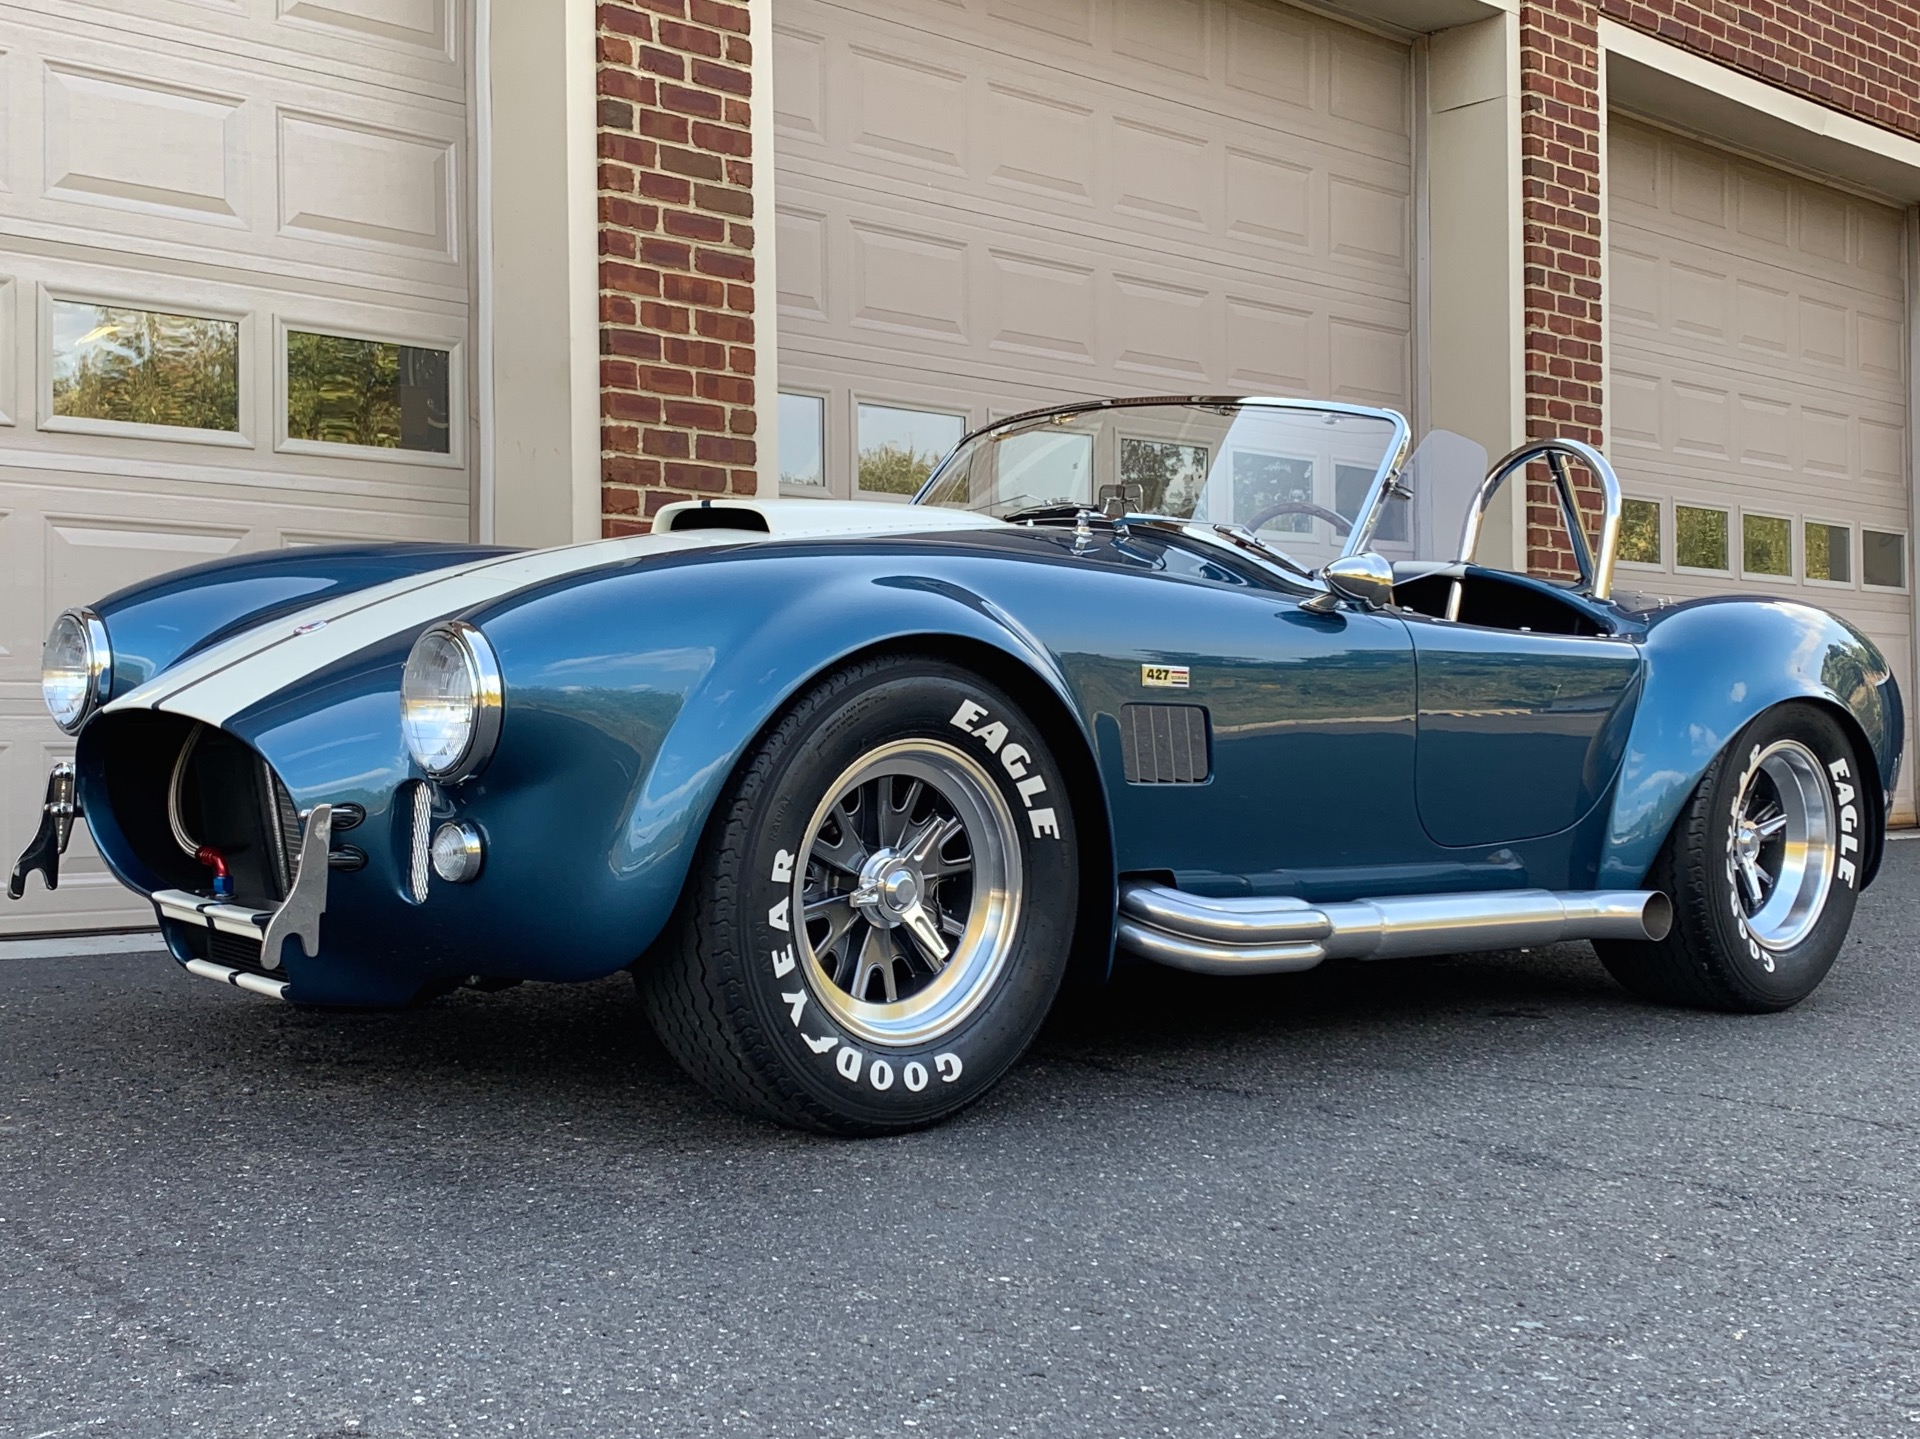 New-1965-Superformance-Mark-III-Cobra